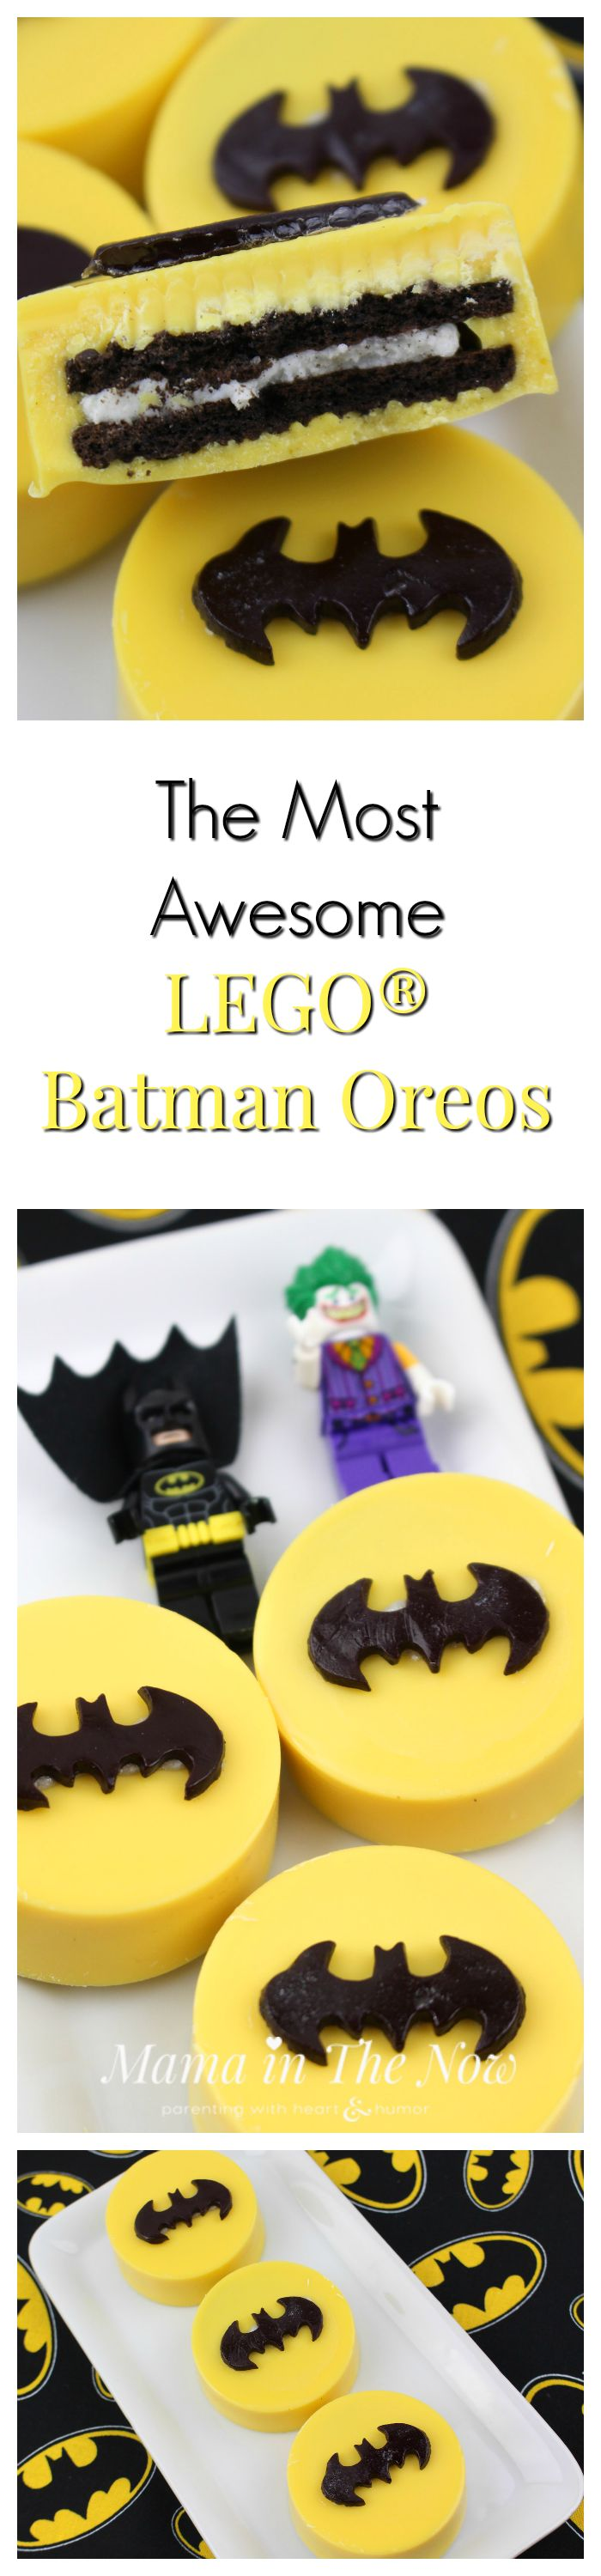 DIY : LEGO Batman Oreo in the Group Board ♥ CREATIVE and ORIGINAL FOOD (KIDS preferably) http://www.pinterest.com/yourfrenchtouch/creative-and-original-food-kids-preferably